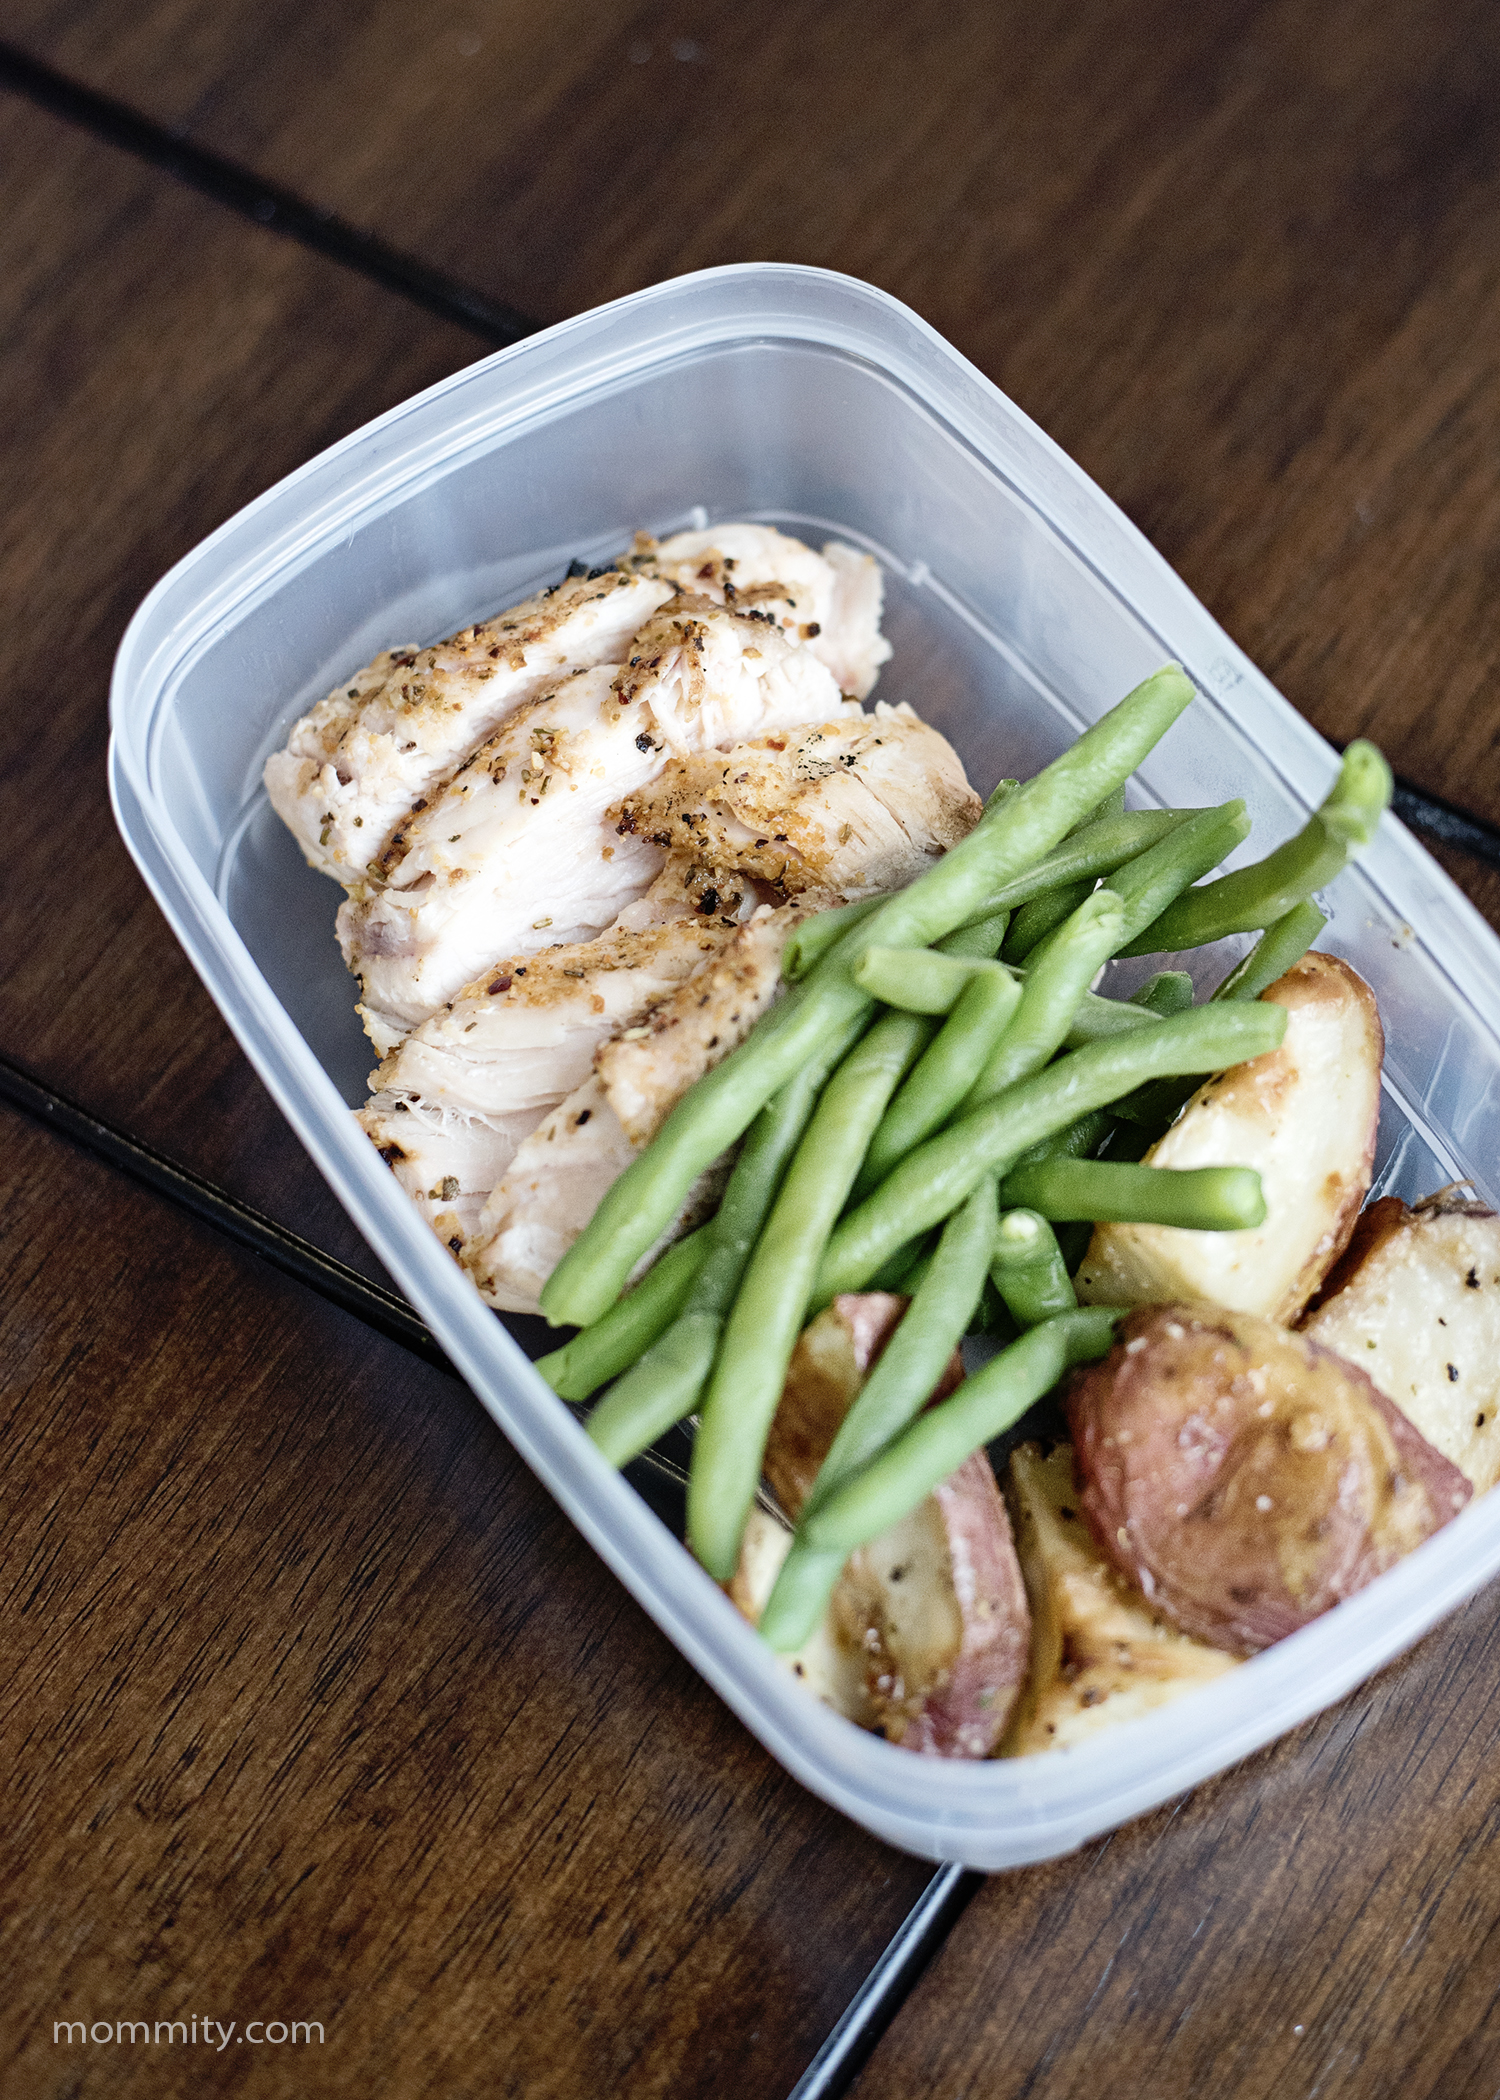 Weight Loss Meal Prepping Ideas for the Week - Beginners Guide